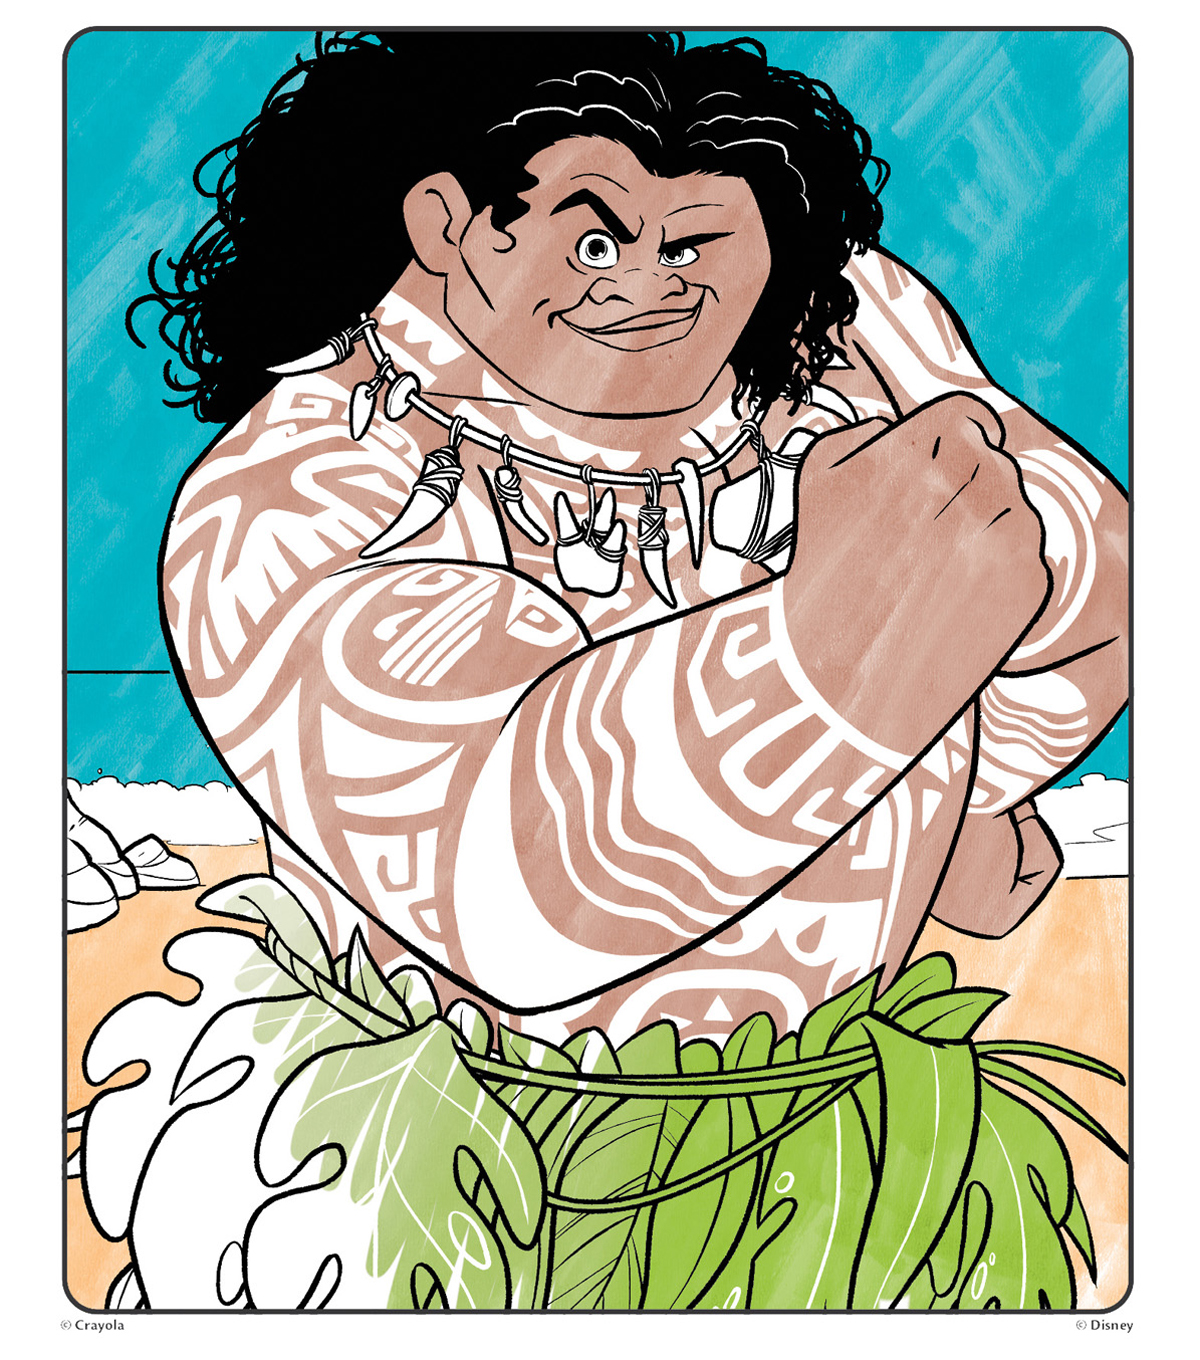 Crayola Colour Wonder Mess Free Coloring 18 Pages with 5 Mess Free Markers The Magic of Color Without the Mess Disneys Moana Coloring Book